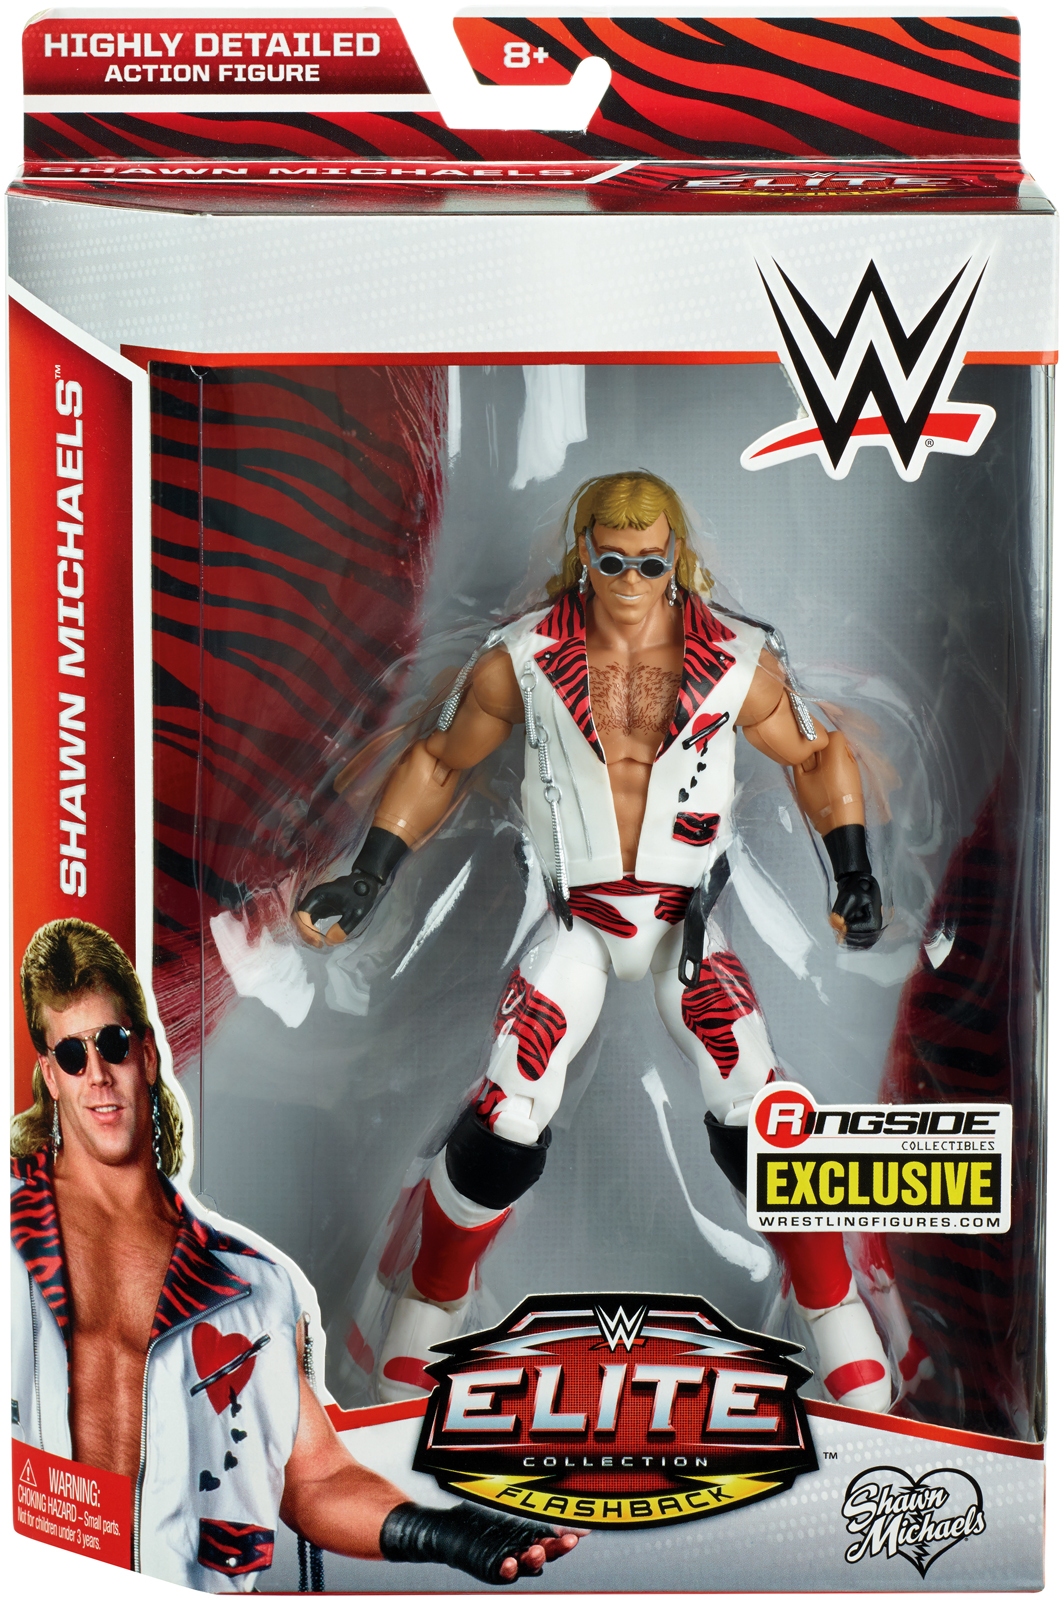 Heartbreak Kid (HBK) Shawn Michaels Ringside Exclusive WWE Toy Wrestling Action Figure by